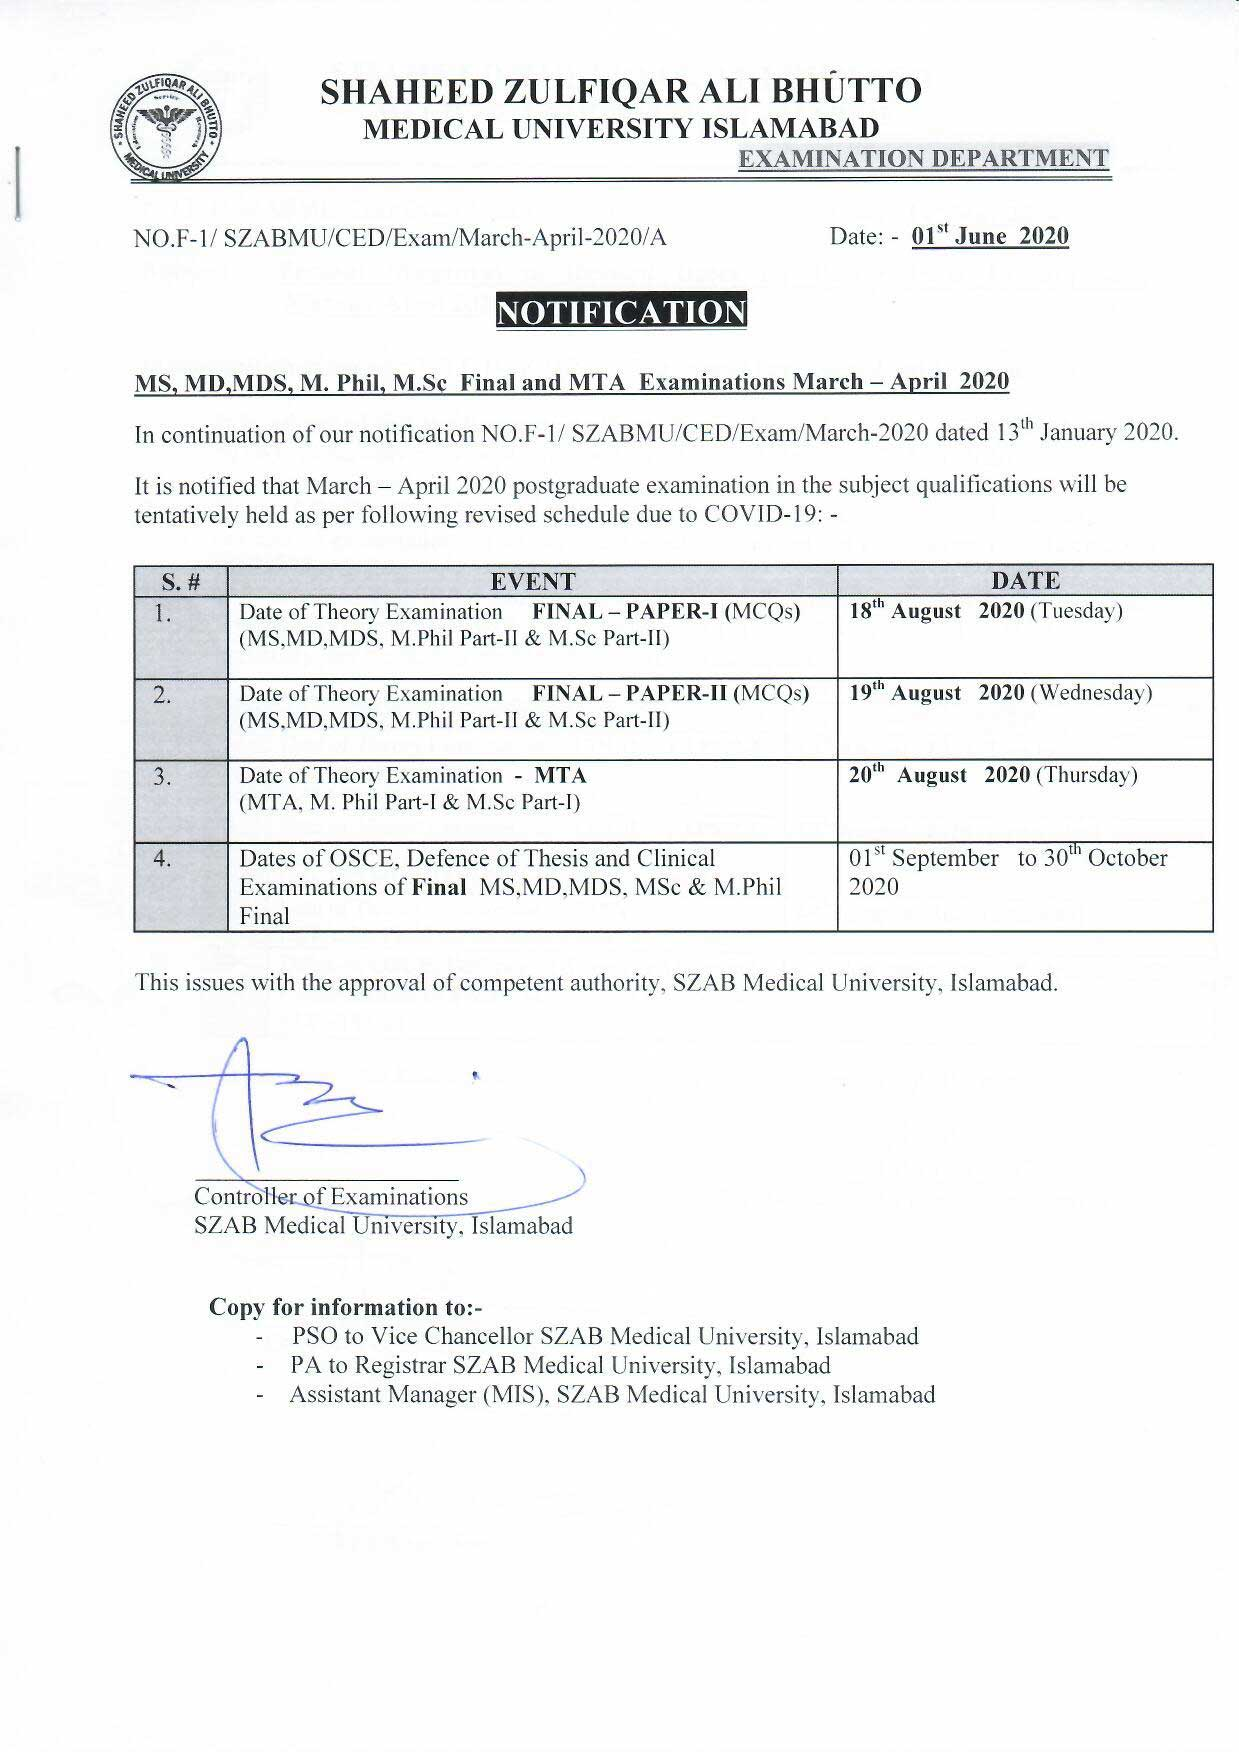 Revised Notification of MS-MD-MDS Examinations March-April 2020 session